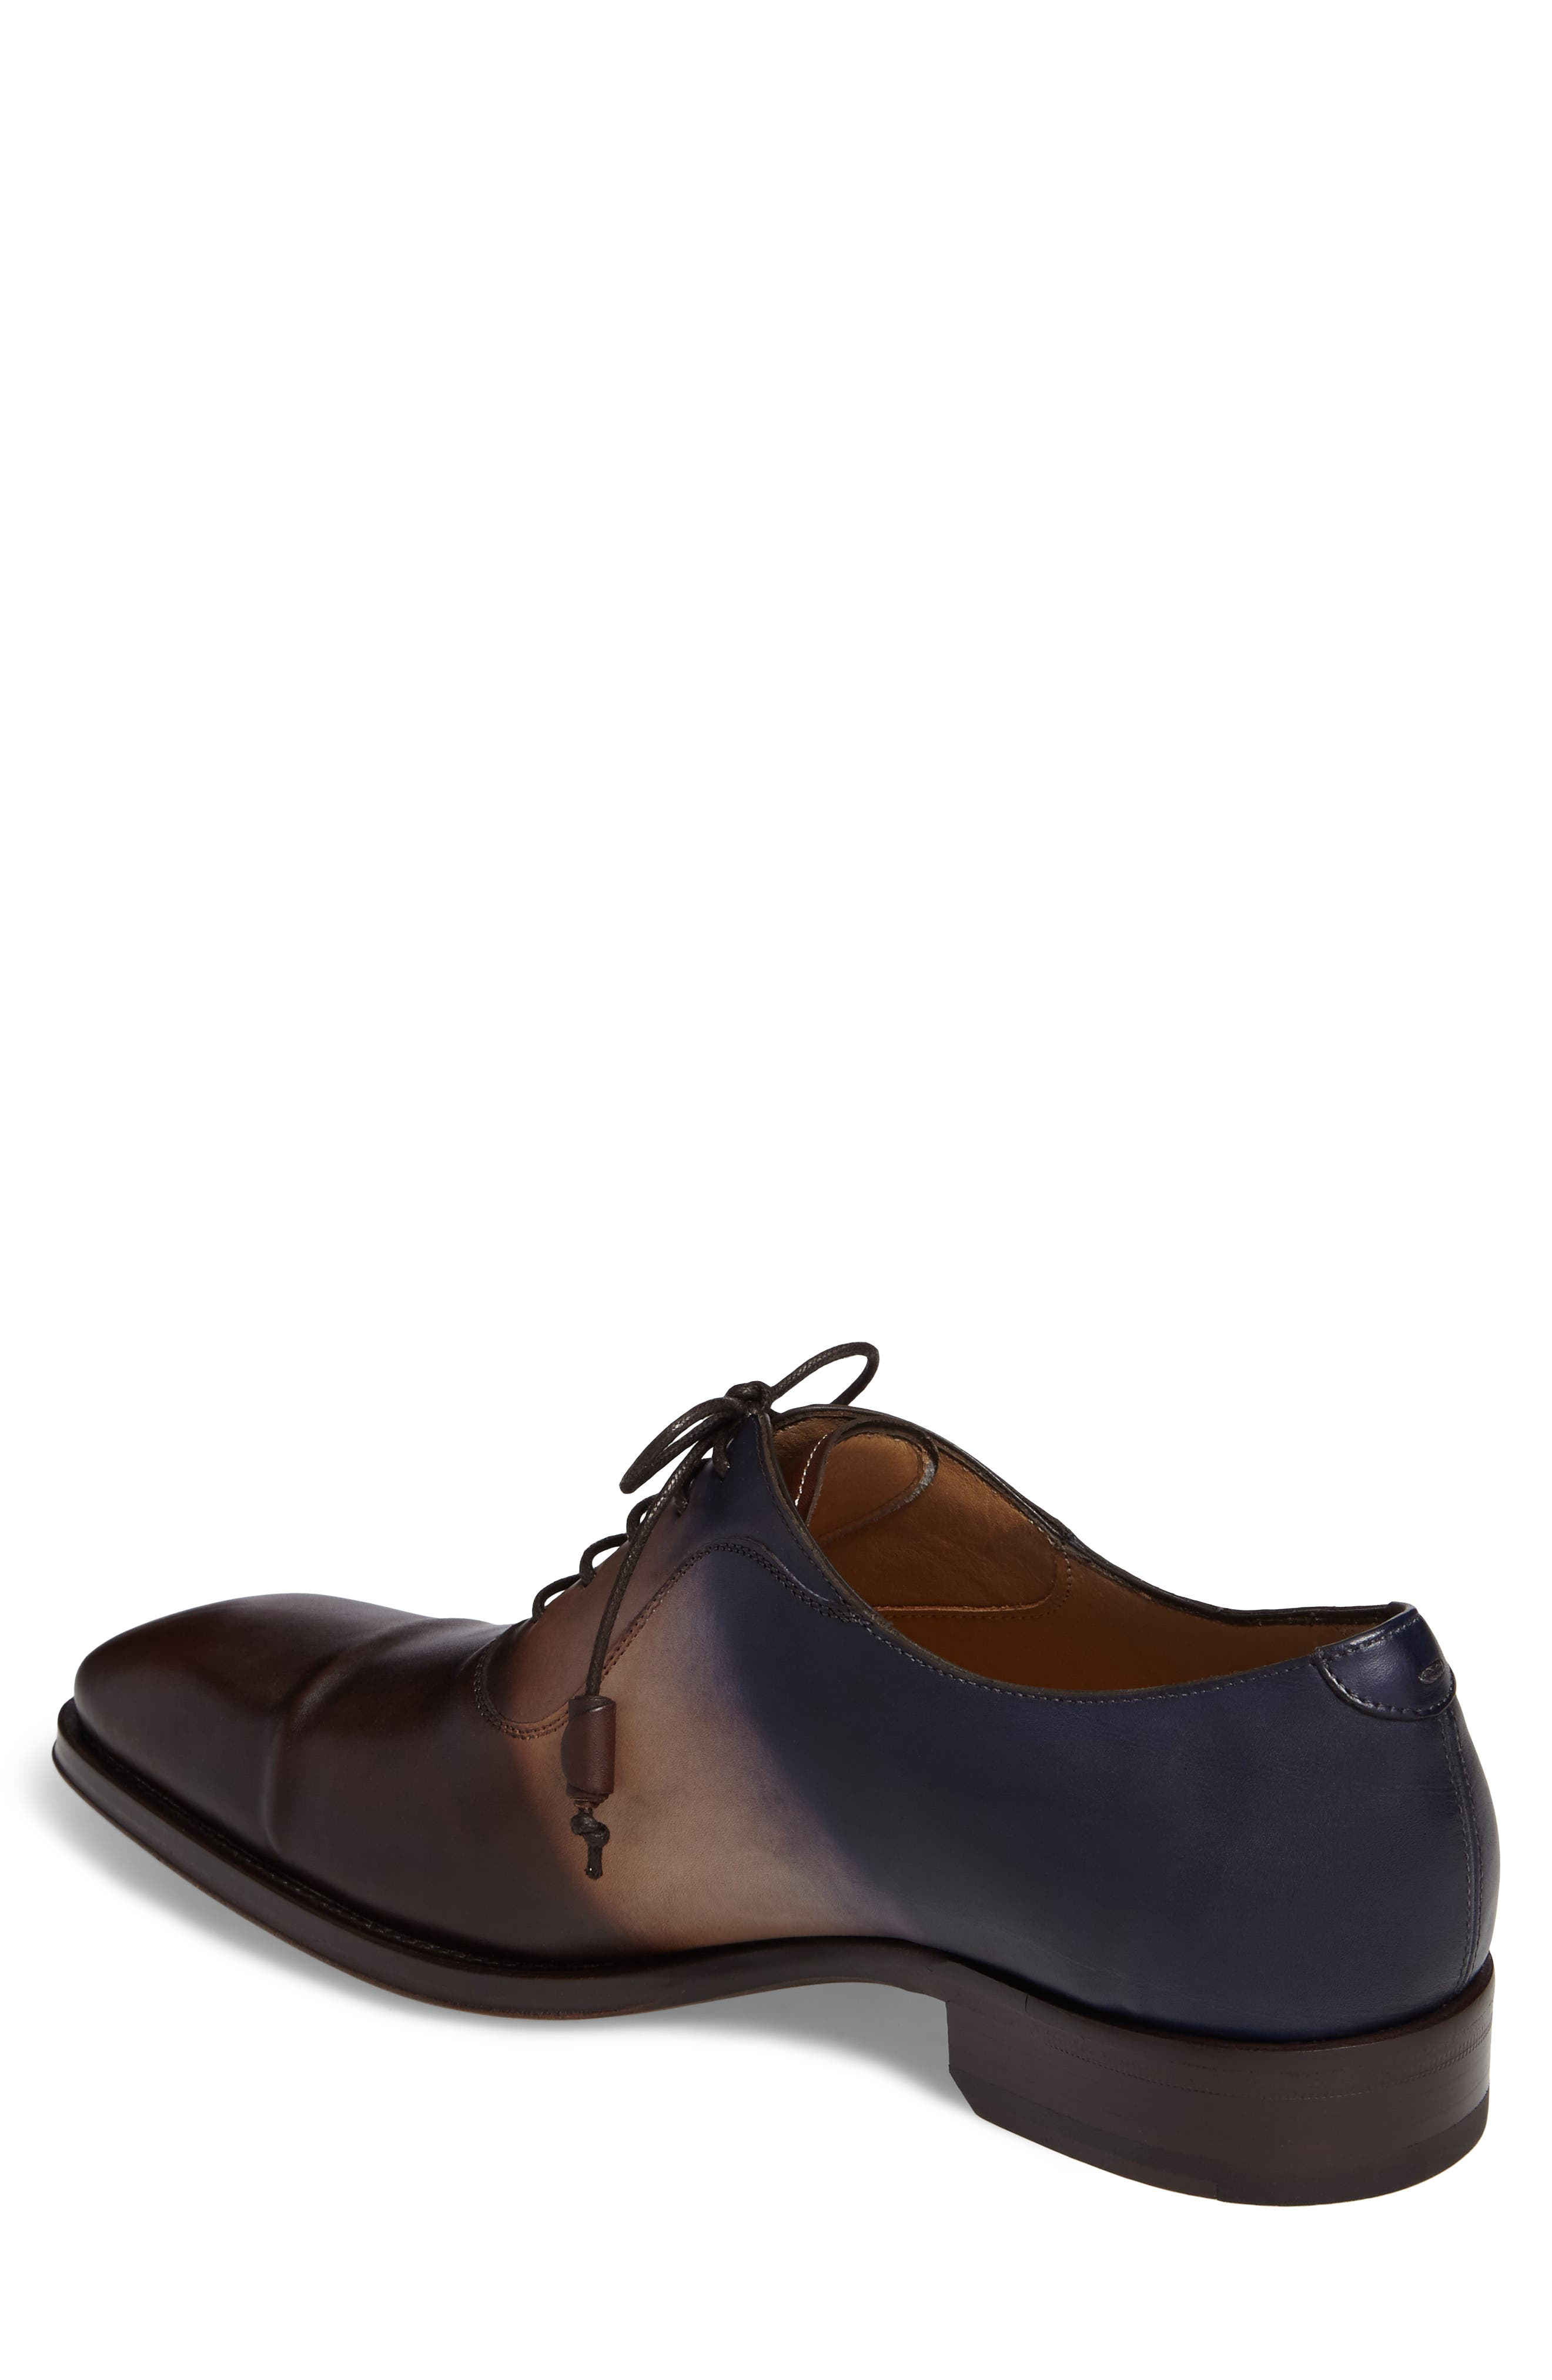 Millet Cap Toe Oxford,                             Alternate thumbnail 2, color,                             Brown Multi Leather